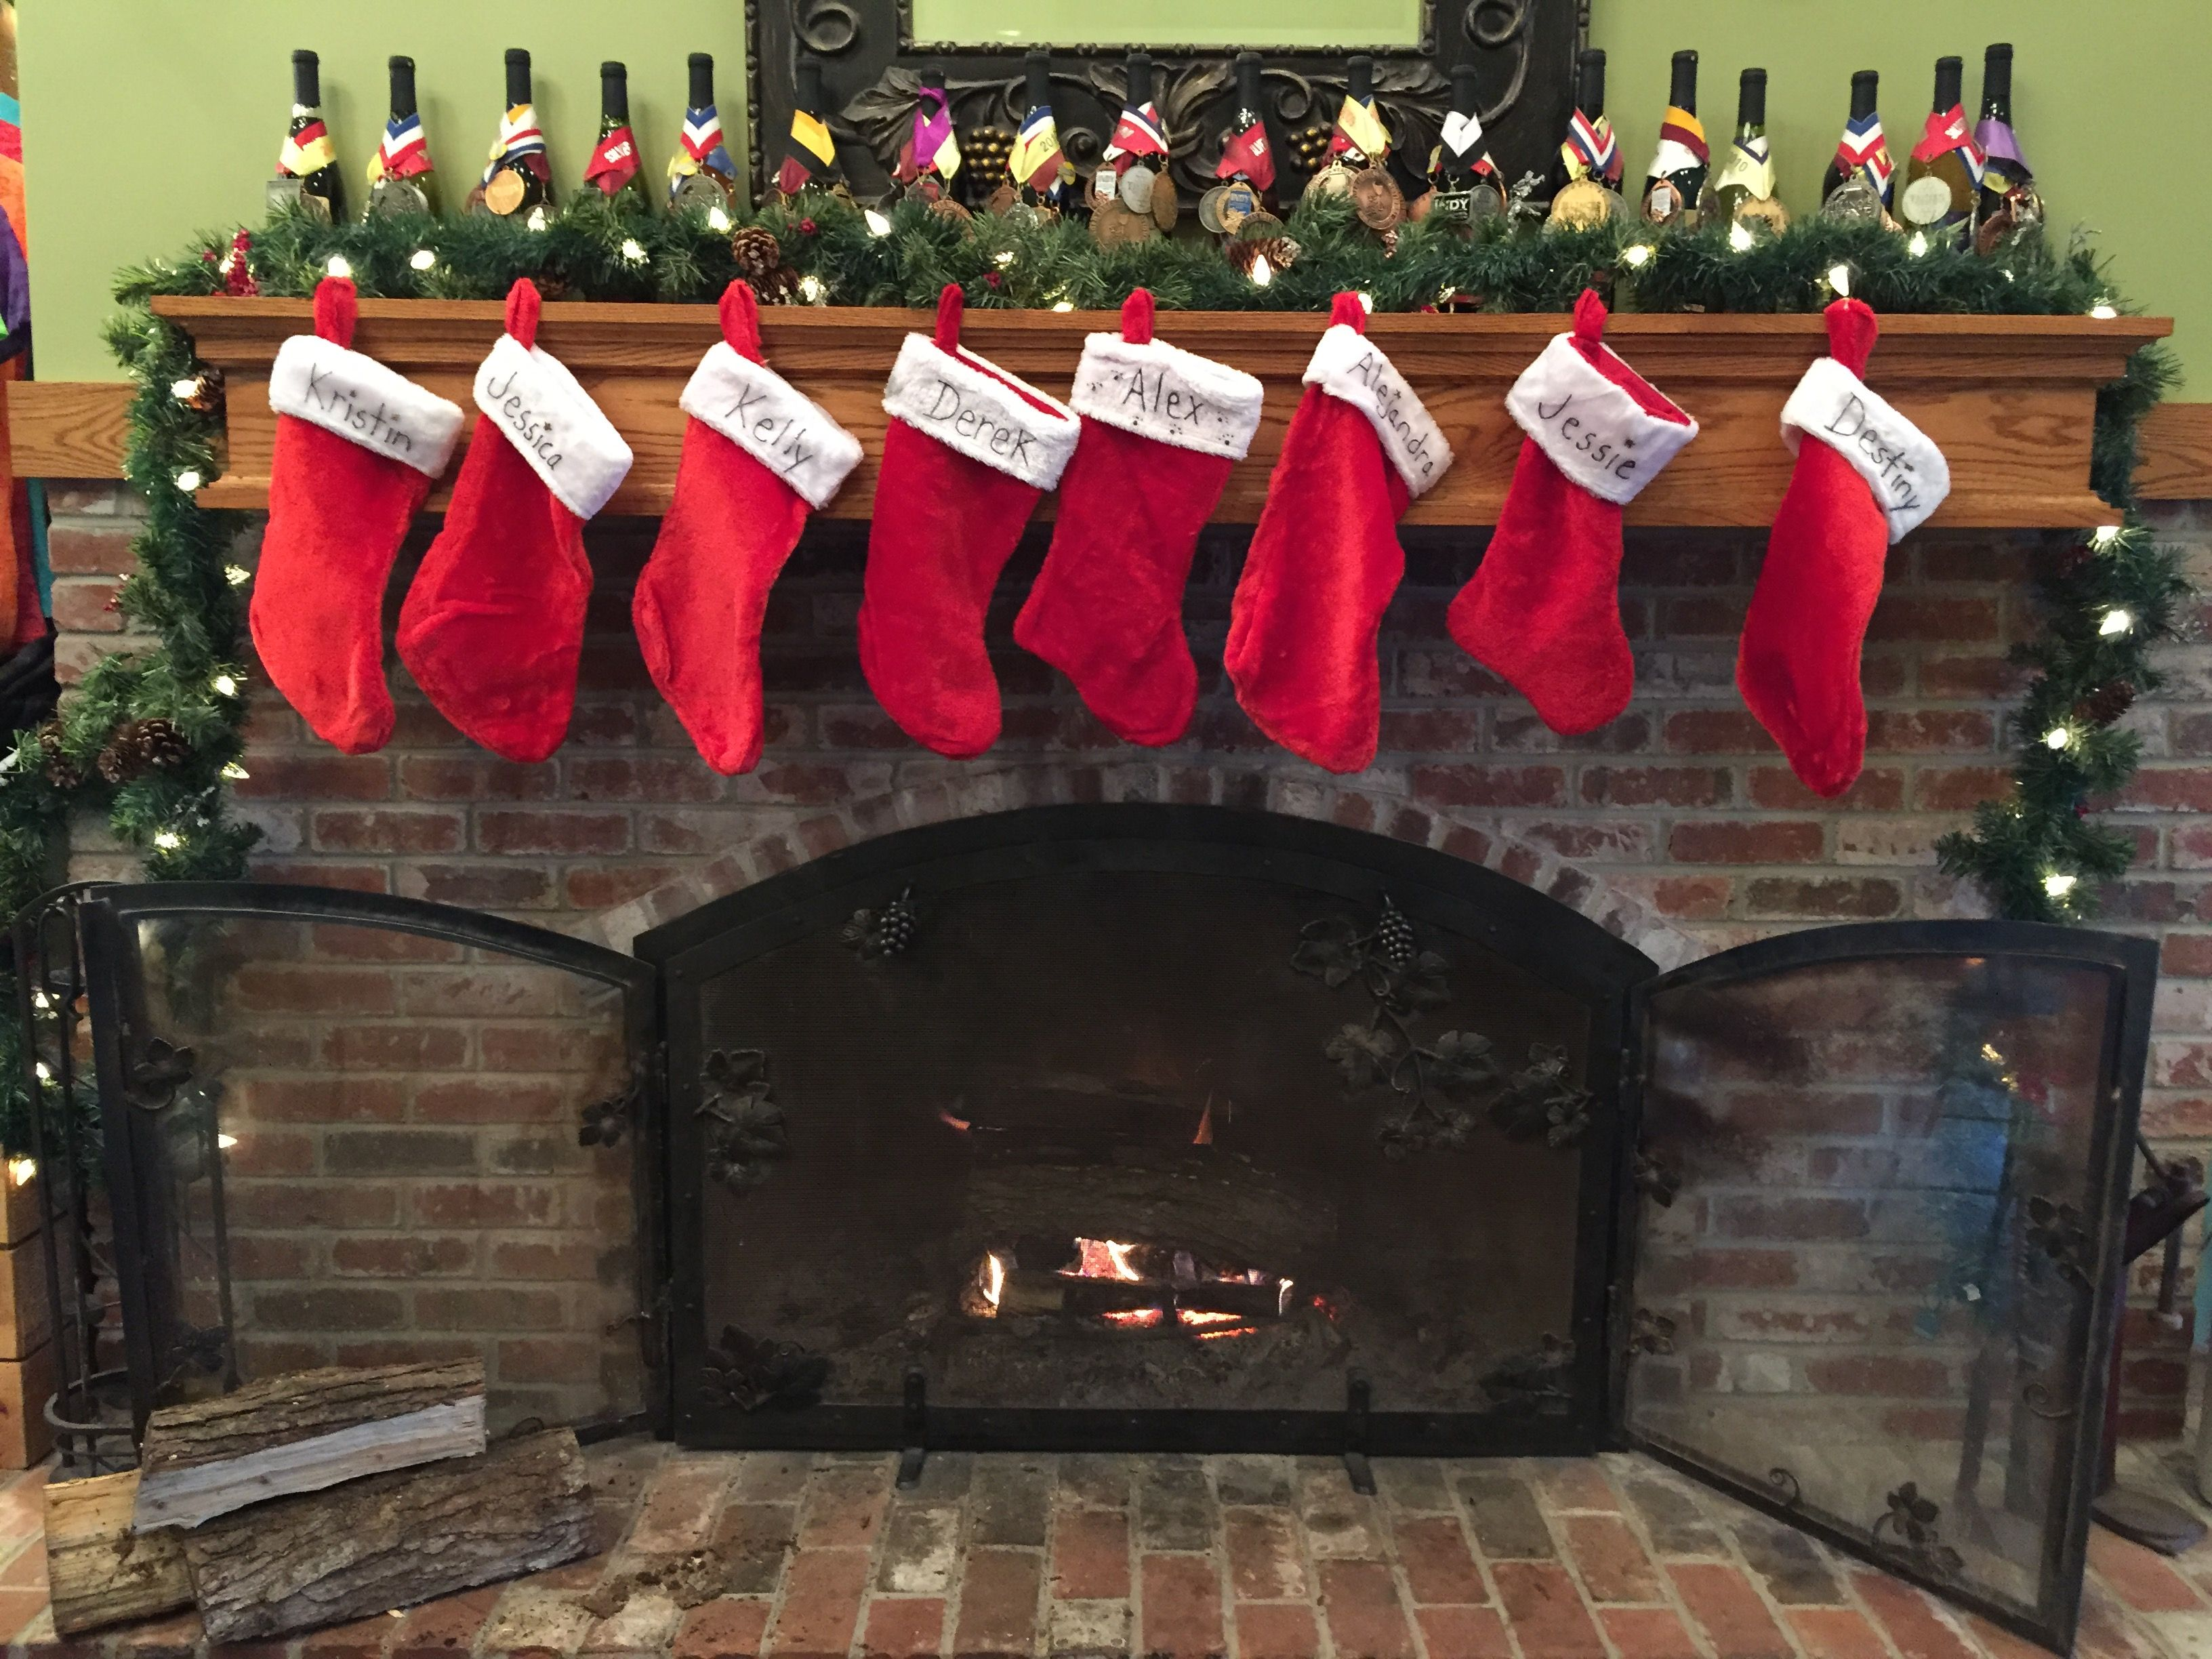 What A Cozy Place To Spend A Chilly Day Fireplace Winery Wine Starviewvineyards Cozy Place Holiday Decor Home Decor